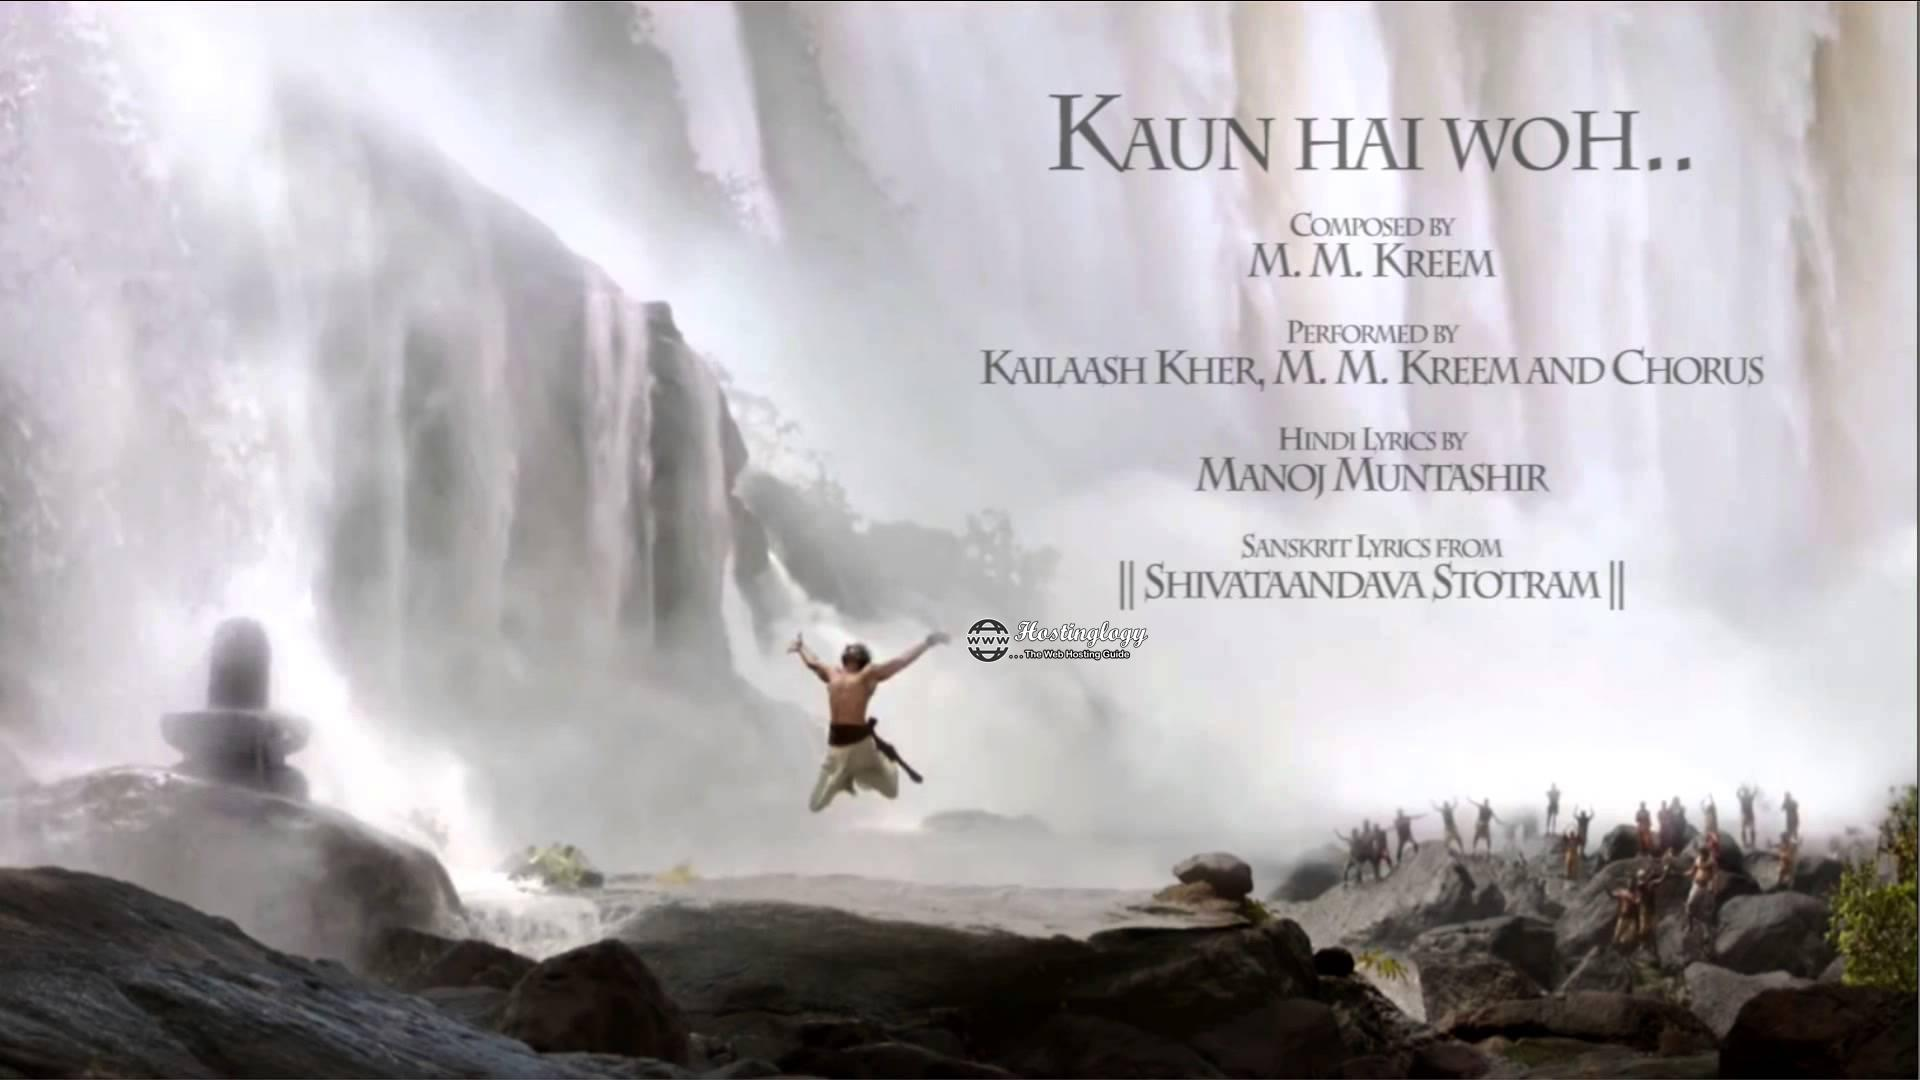 What is the meaning of sanskrit verse in the song 'Kaun hai wo' in movie Bahubali?